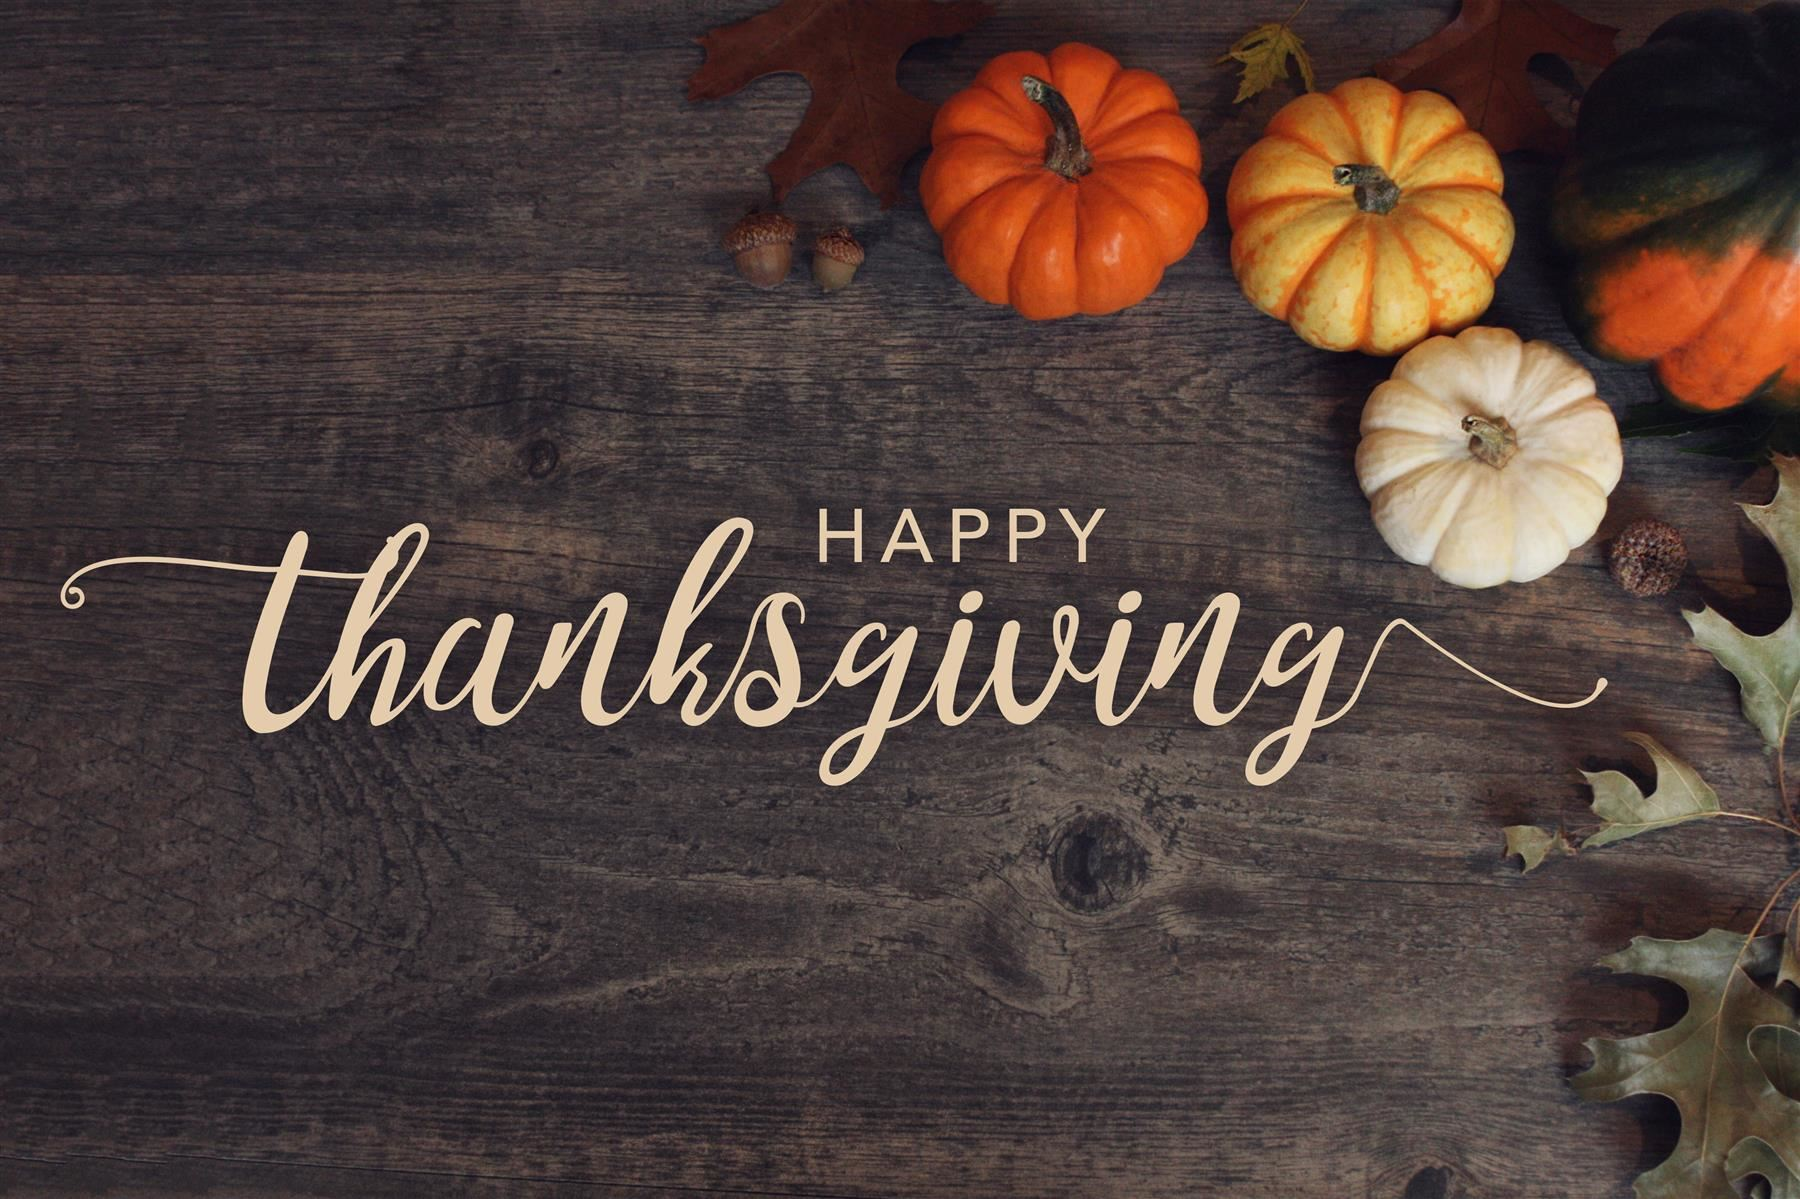 Happy Thanksgiving from Olga Hugelmeyer Superintendent of Schools